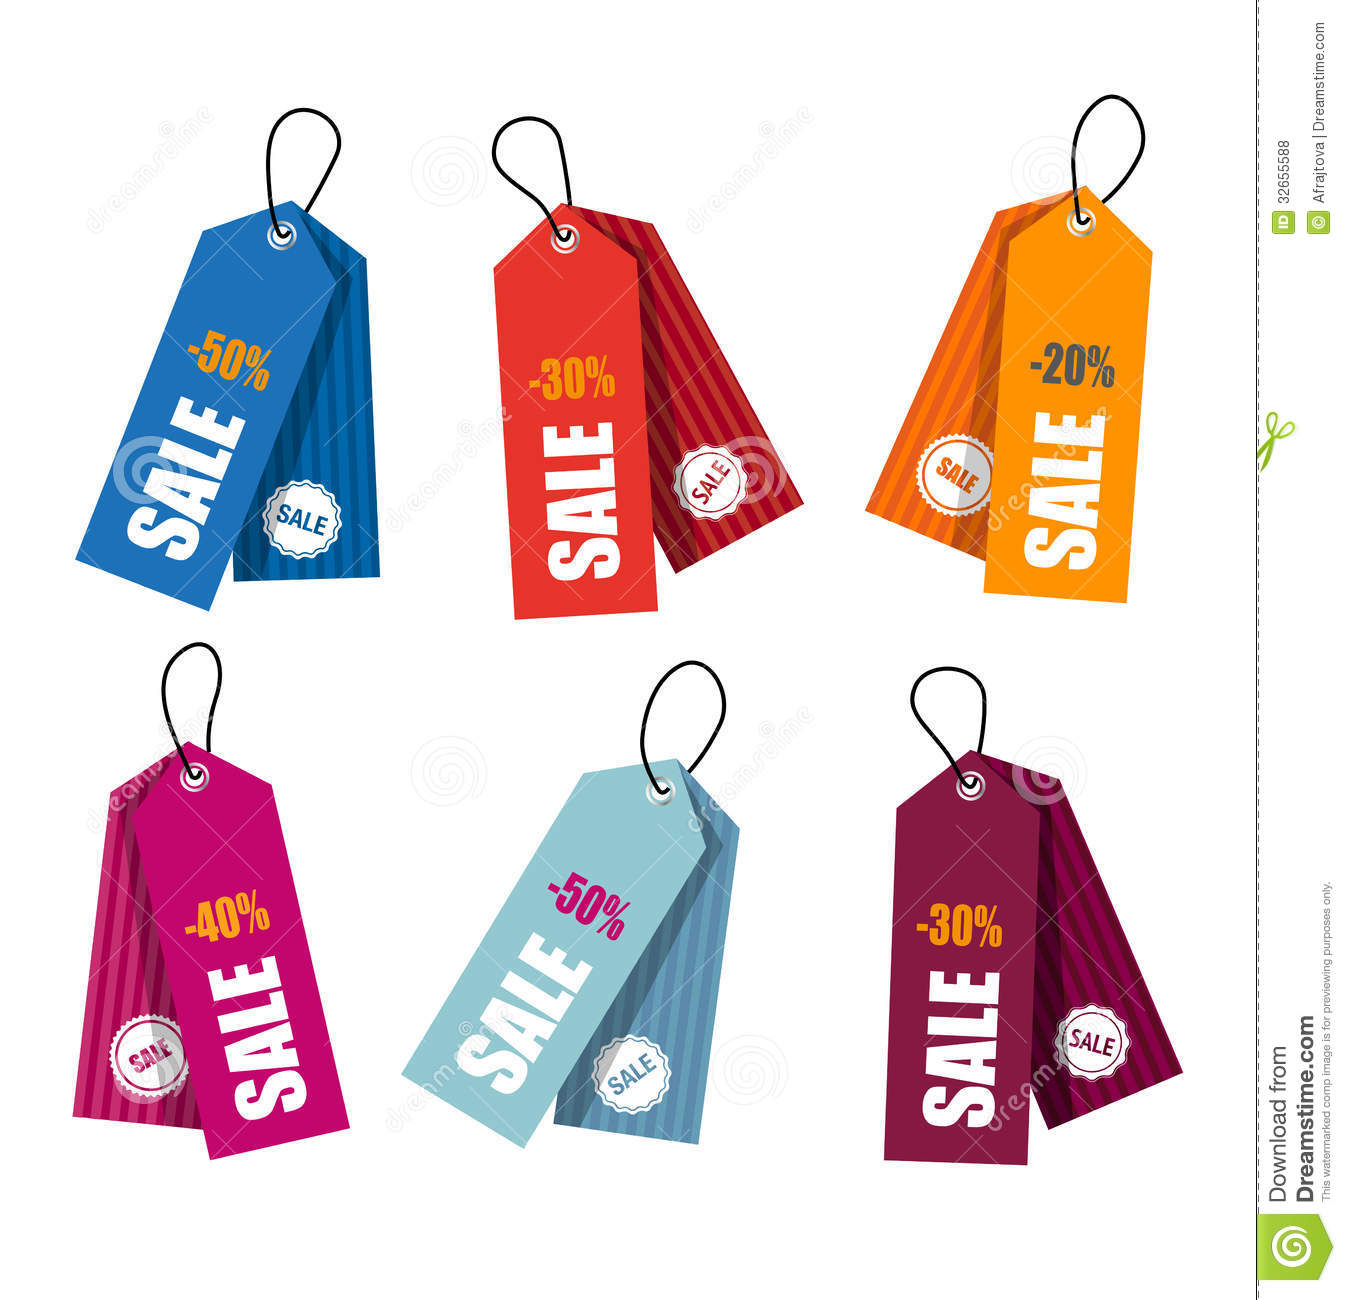 Images of Price Tags Price Tags